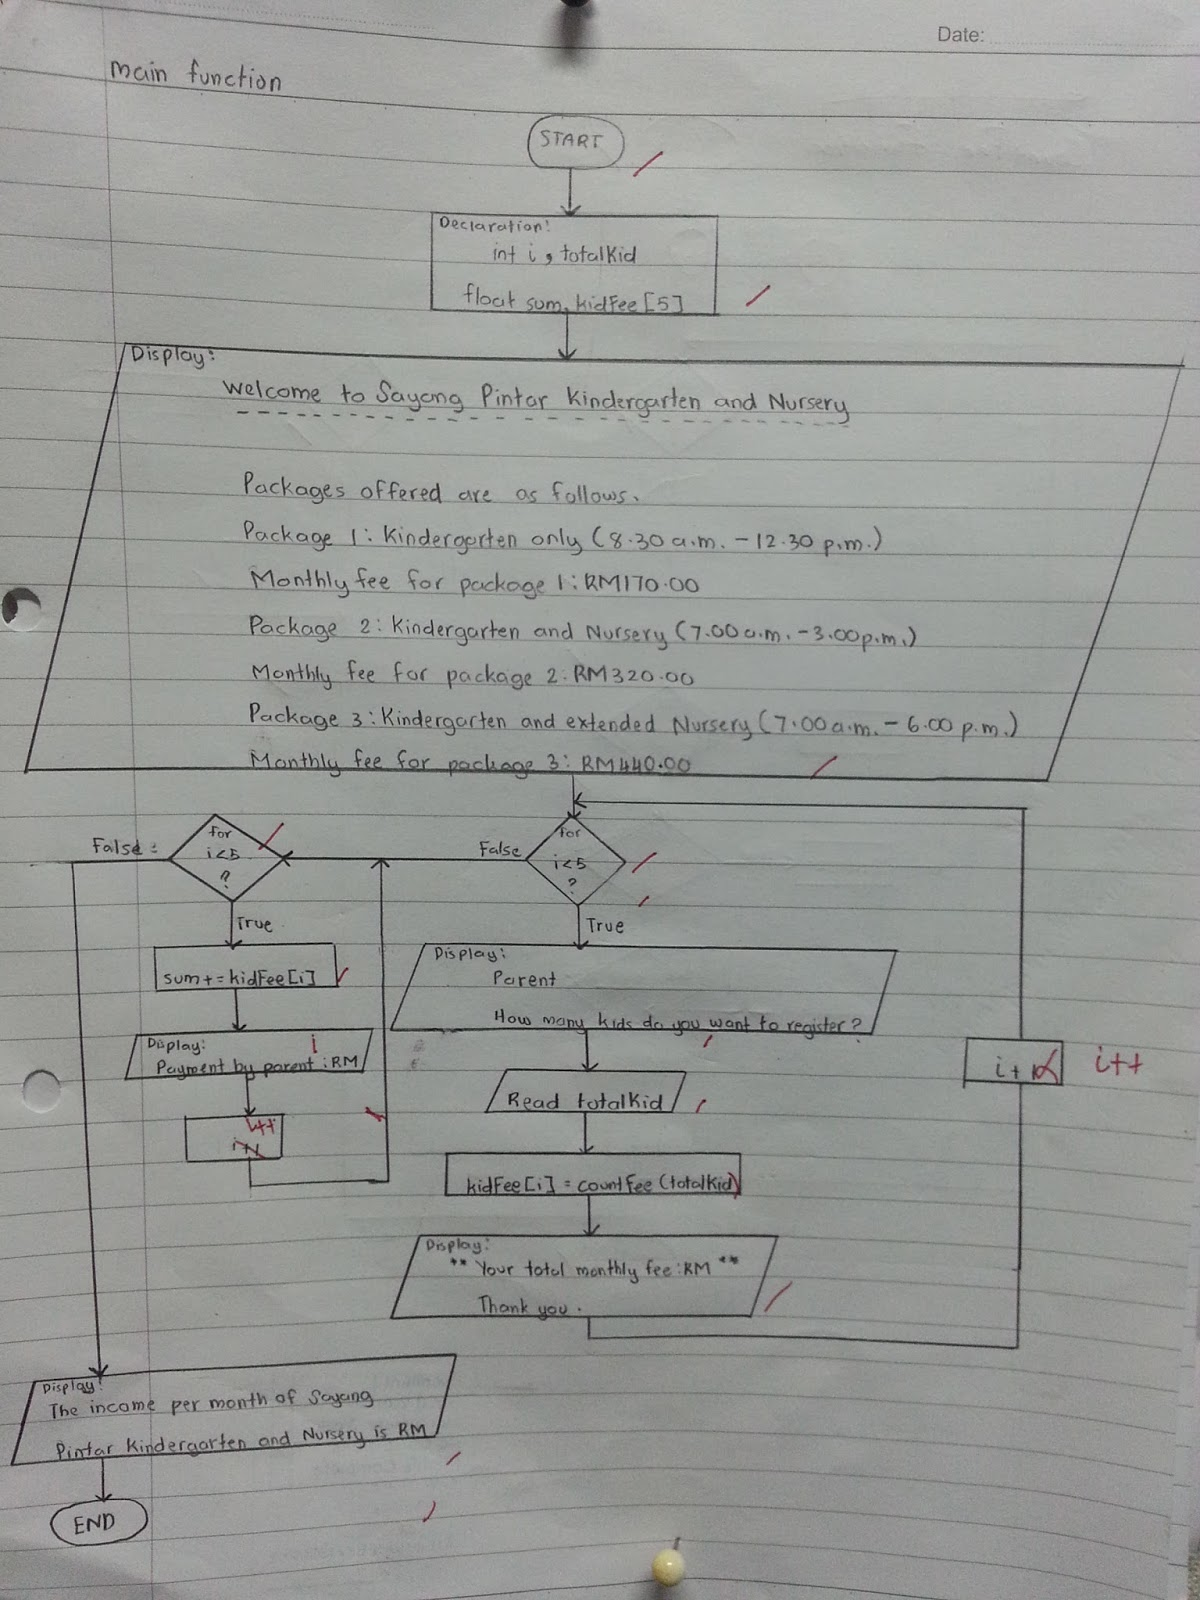 Exercise Flowchart Correction Ict For Form 6